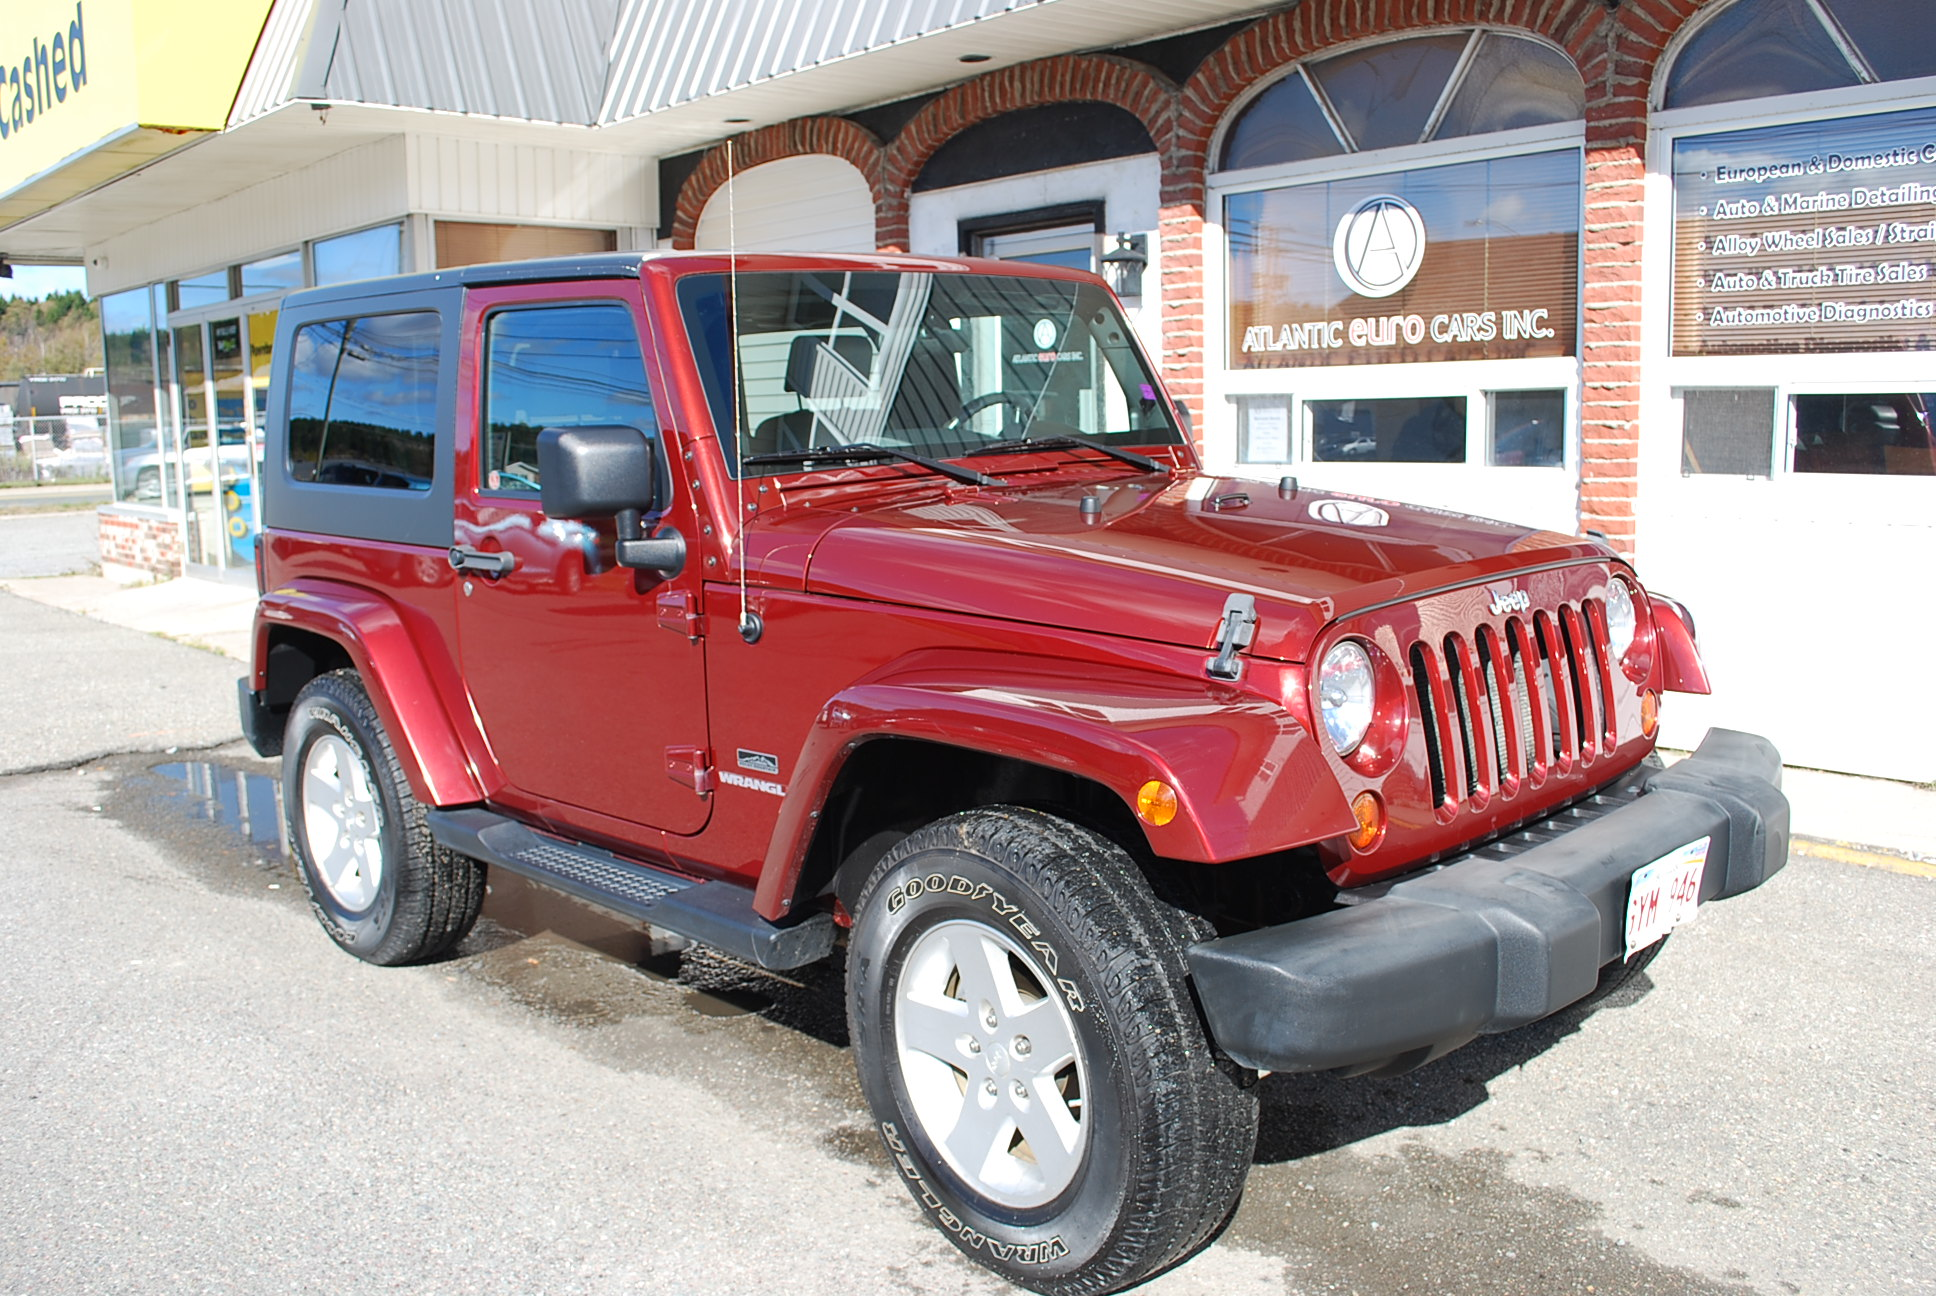 used 2009 jeep wrangler 4wd manual transmission rocky mountain edition for sale in saint john nb. Black Bedroom Furniture Sets. Home Design Ideas